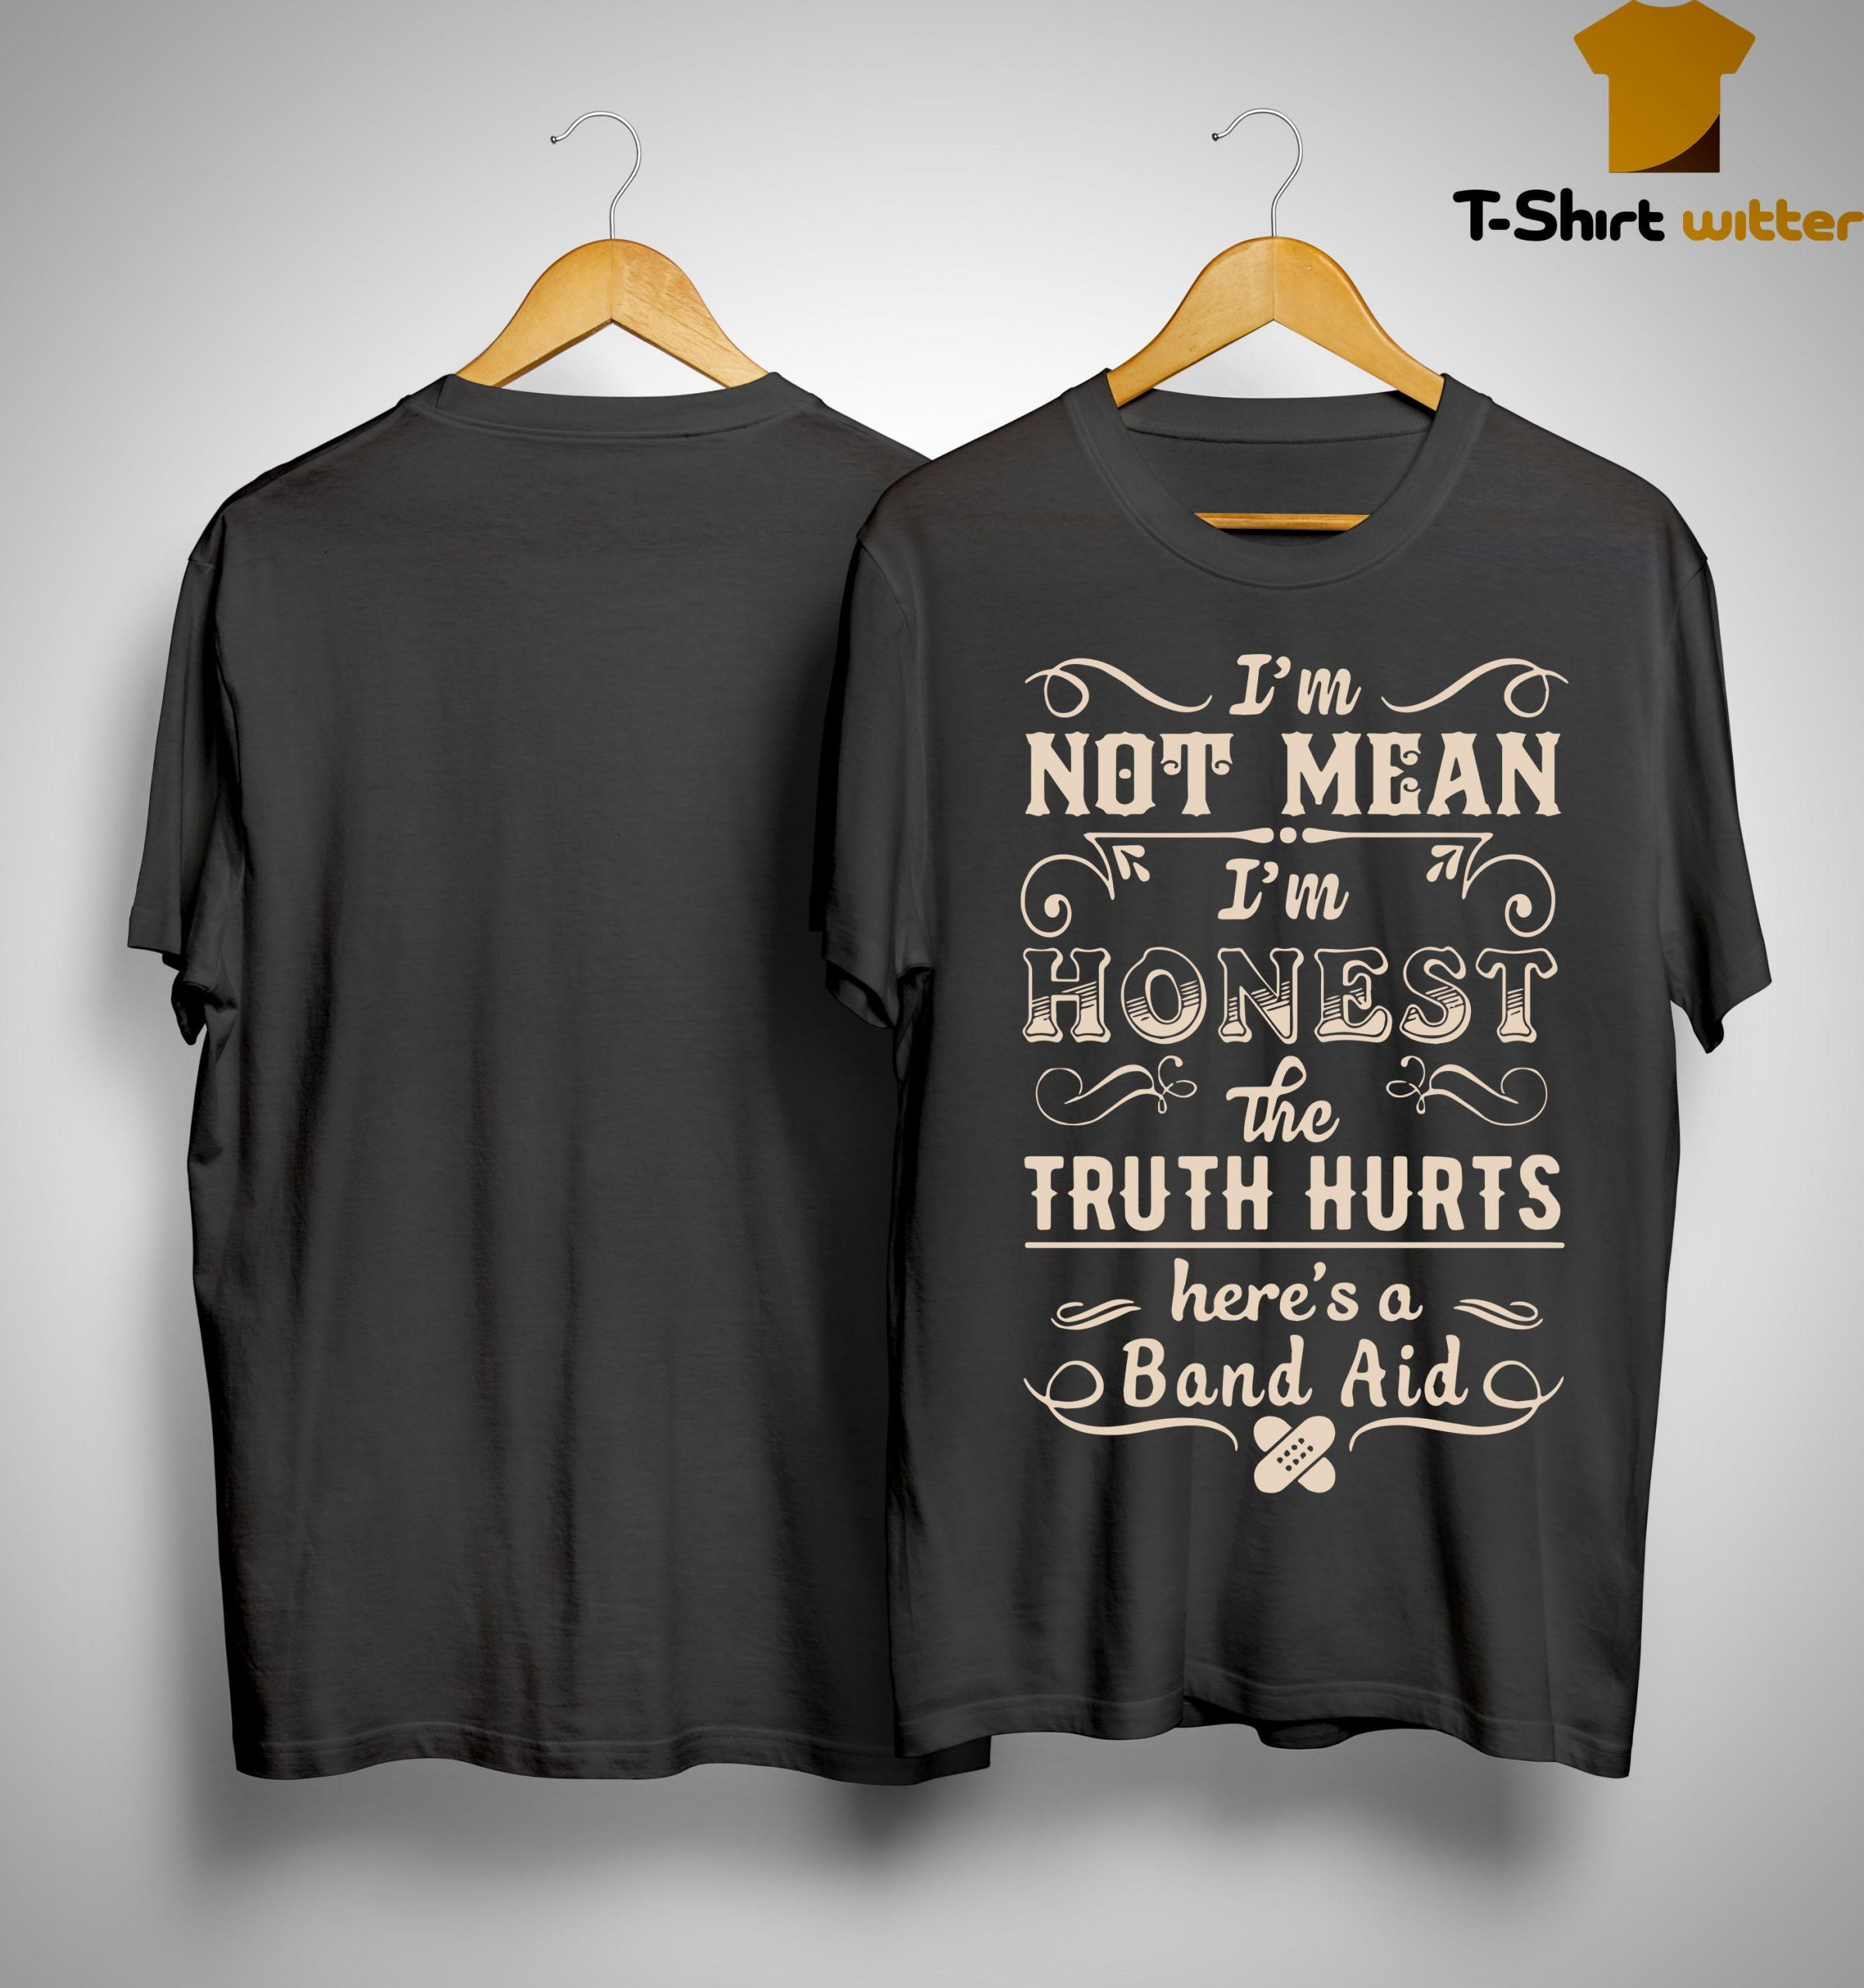 I'm Not Mean I'm Honest The Truth Hurts Here's A Band Aid Shirt